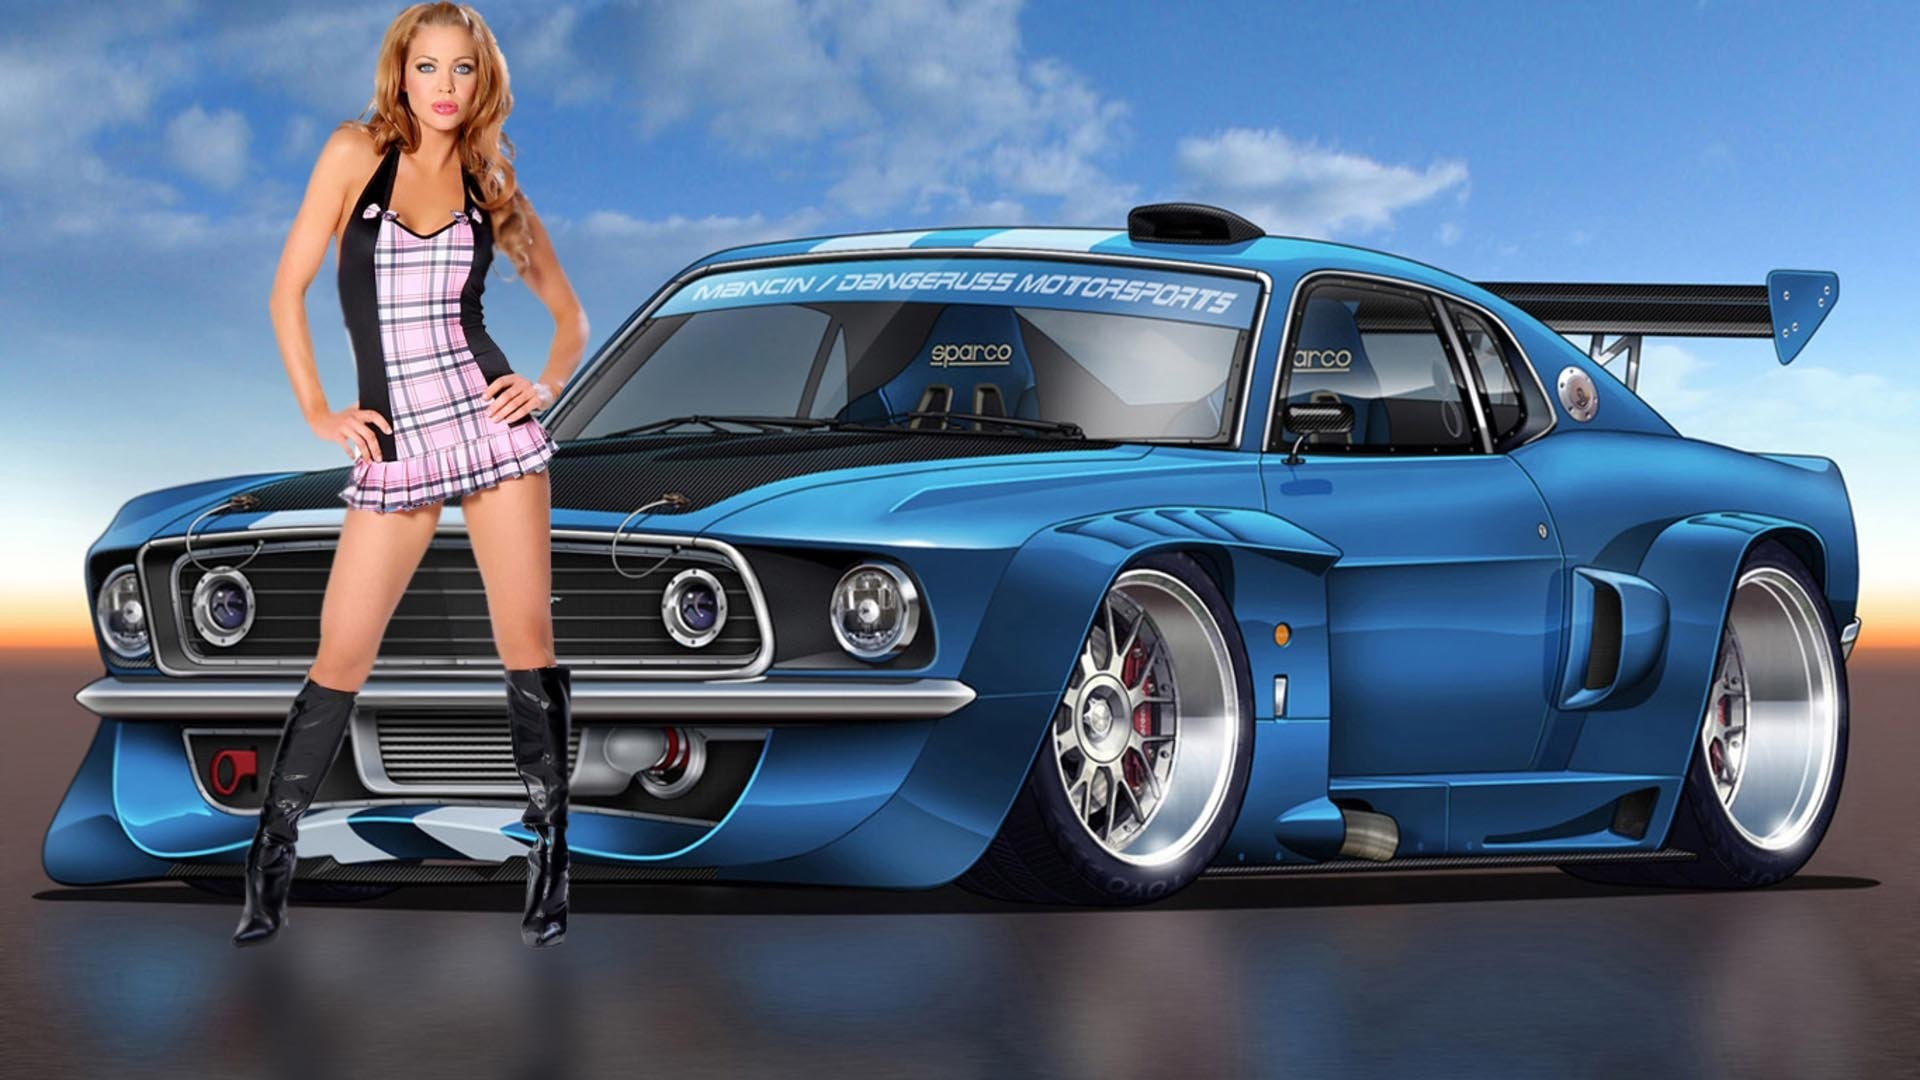 hot cars wallpapers with girls wallpaper